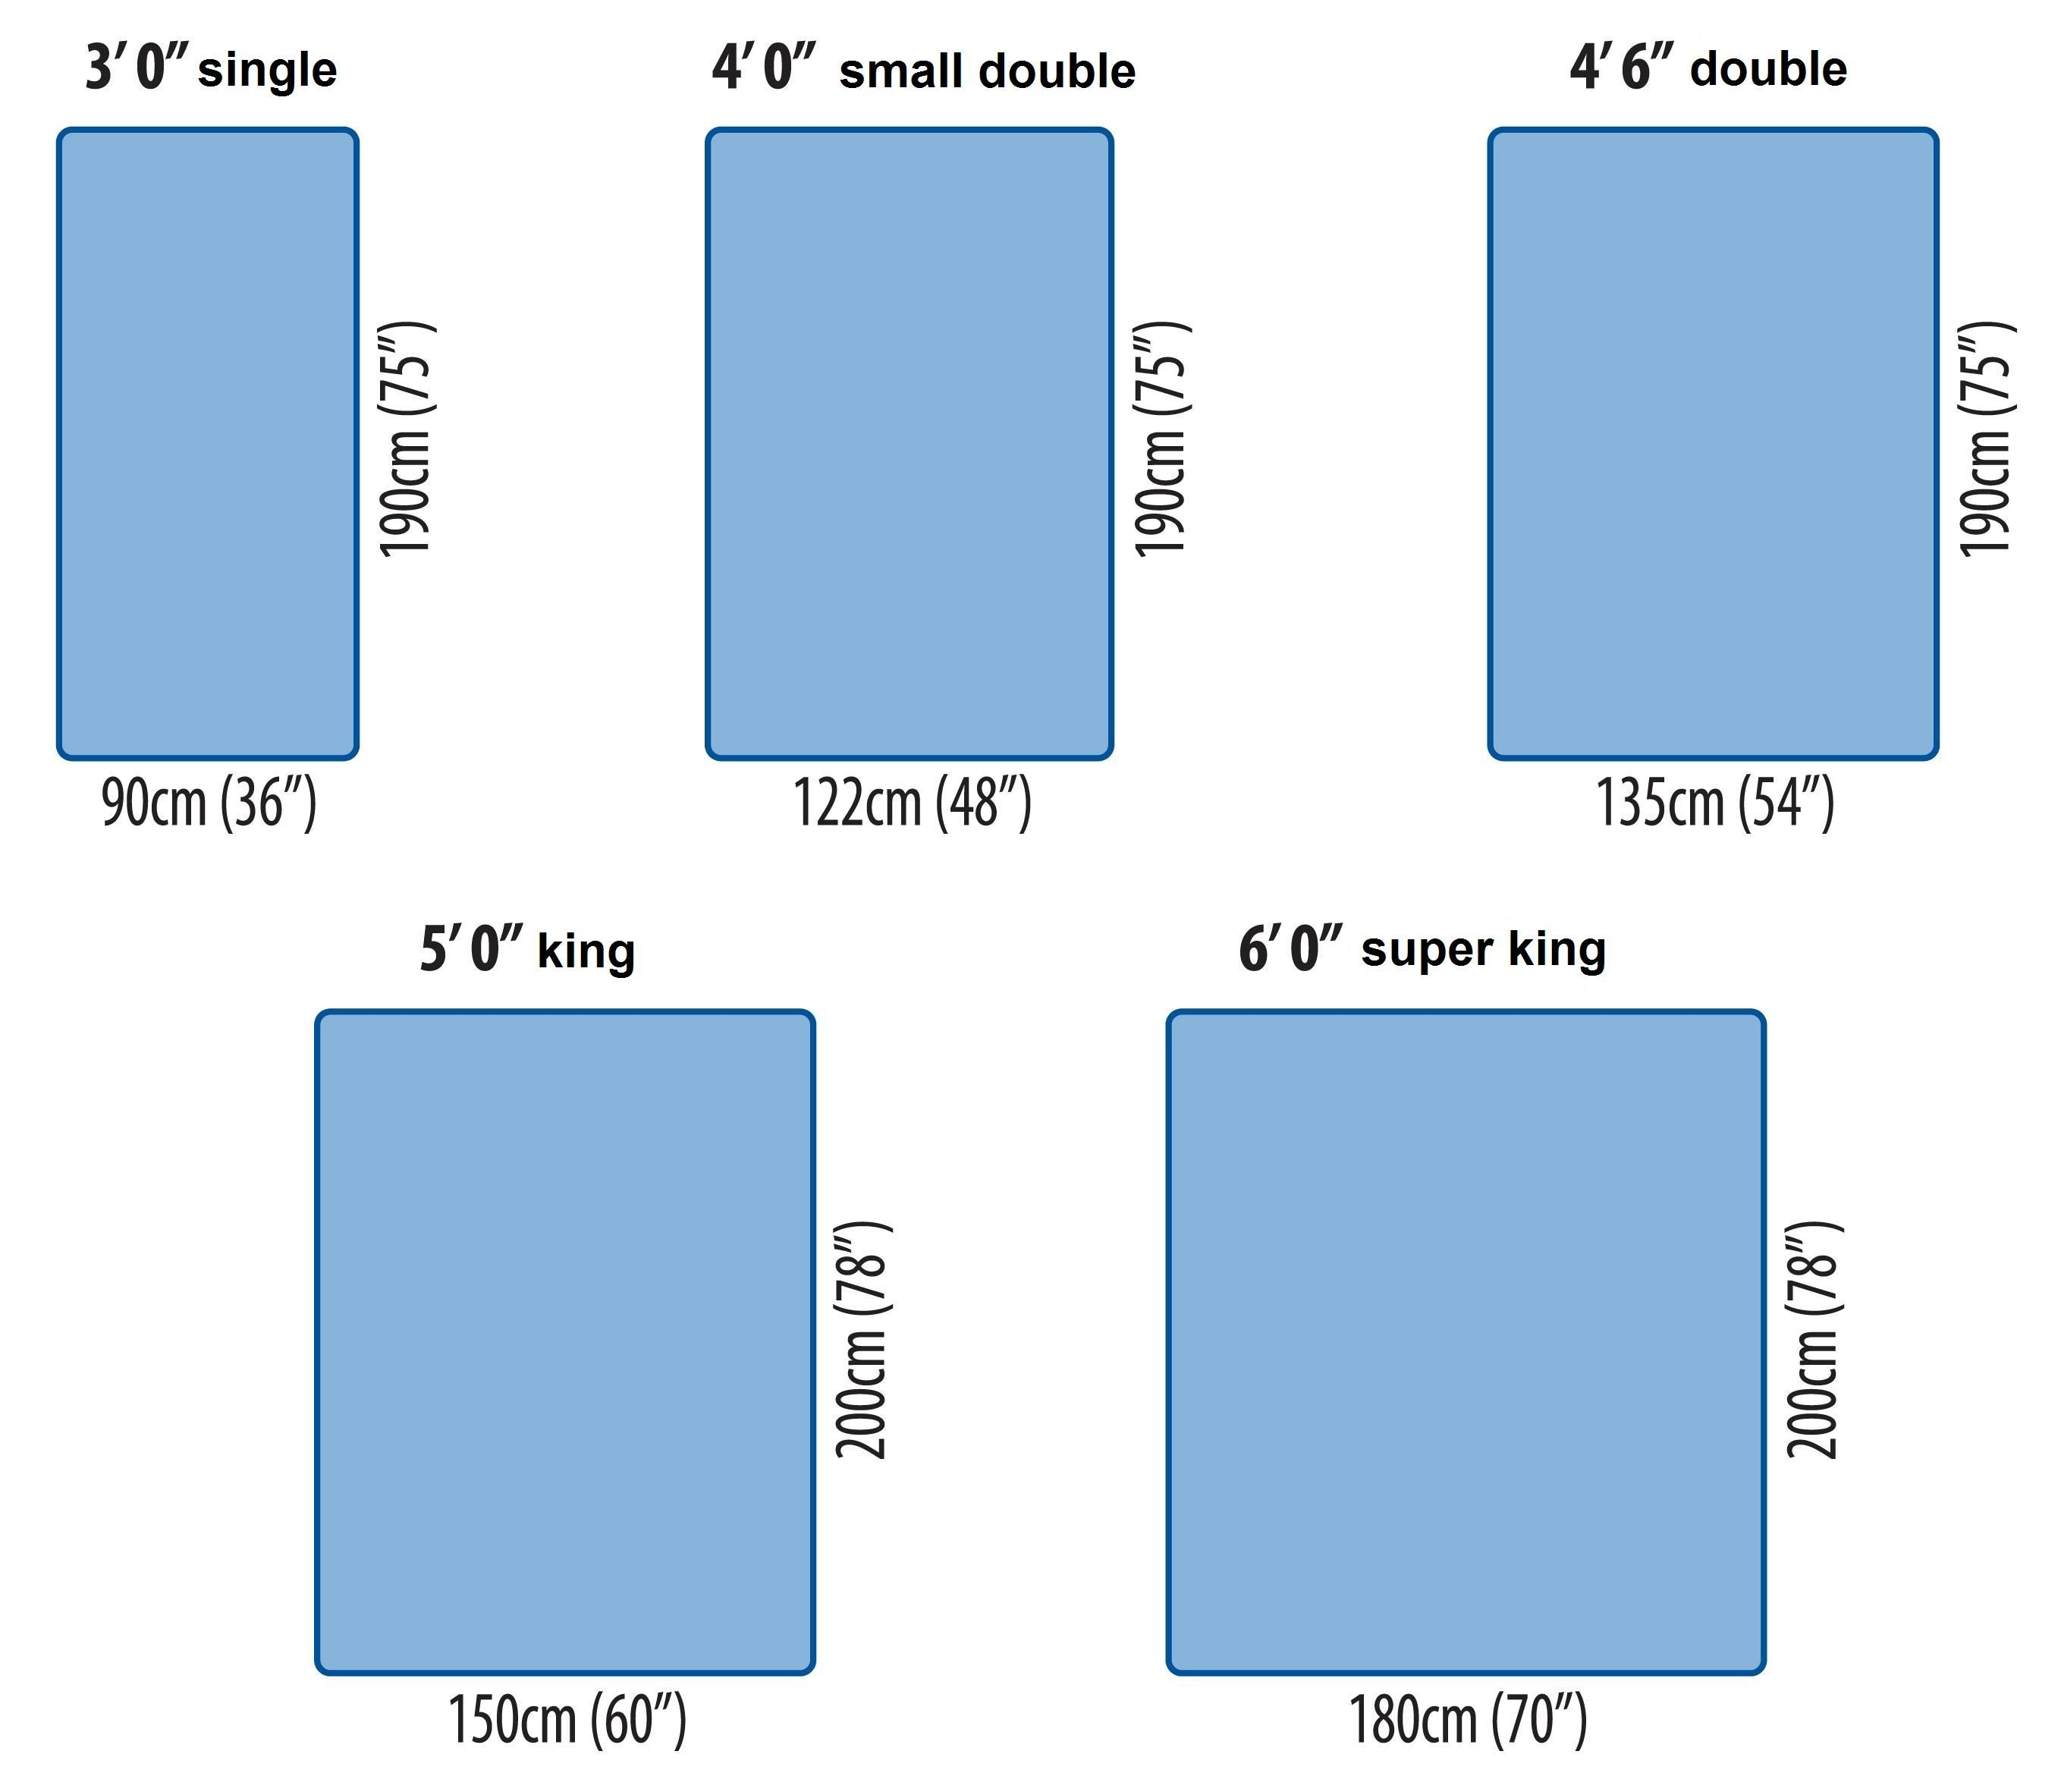 Size Of A King Single Bed Bed Sizes Are Confusing Interior Design Major